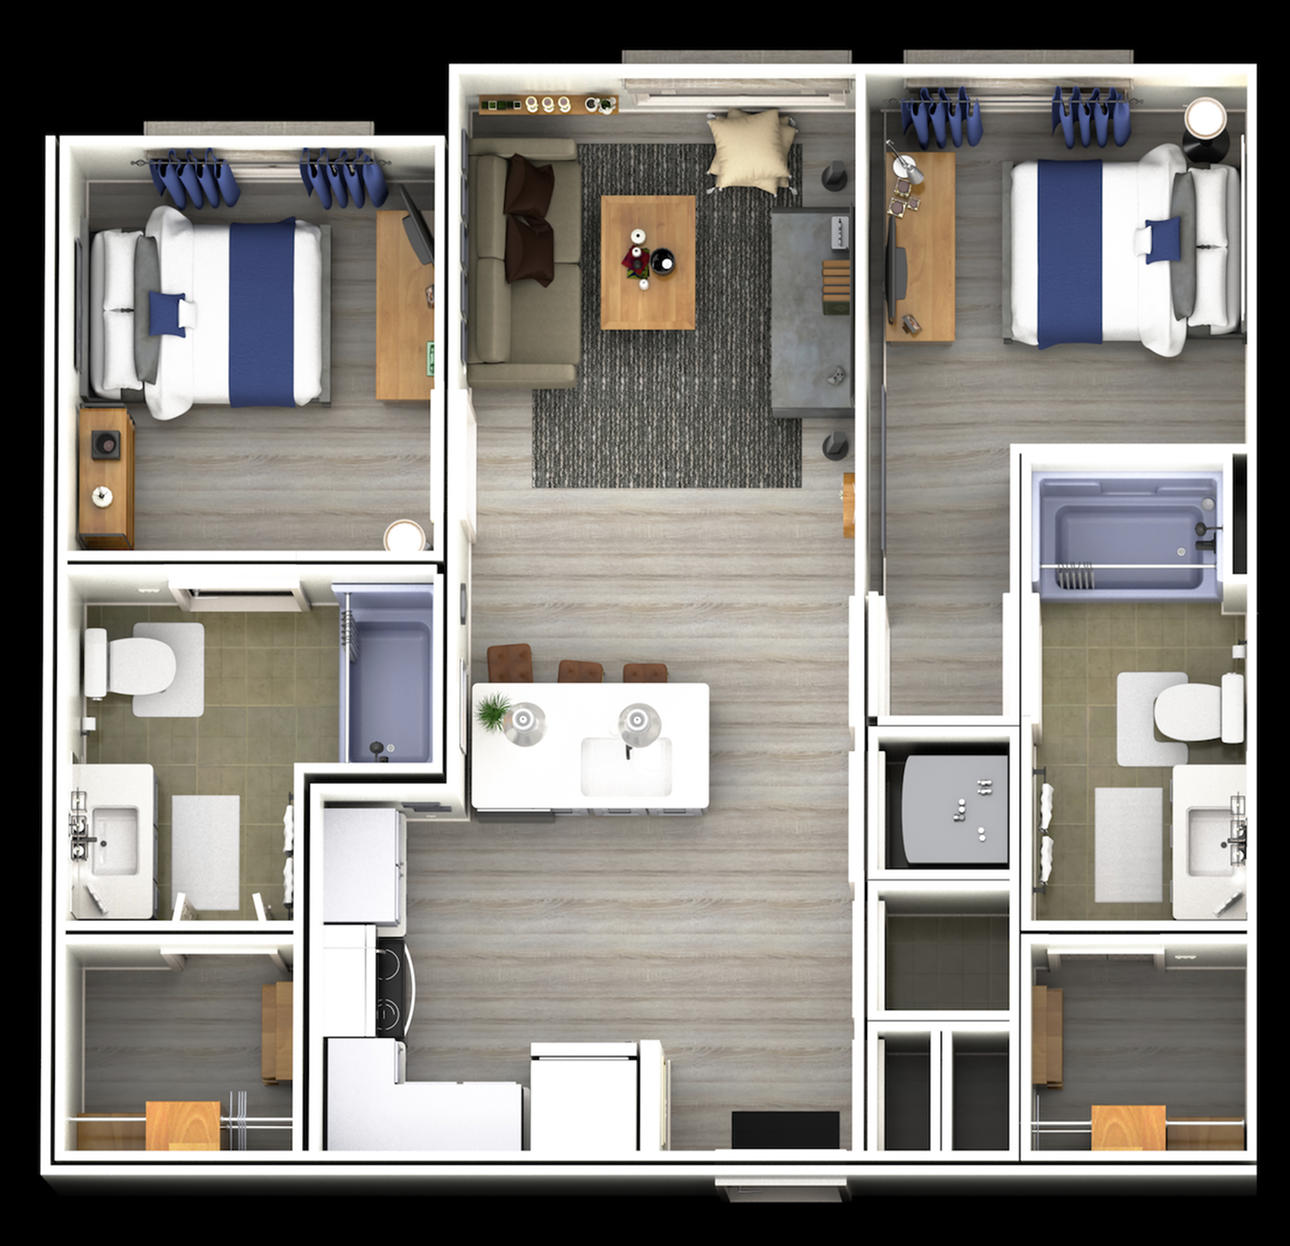 A two bedroom, two bathroom apartment | Apartments in Knoxville, TN | Flagship Kerns